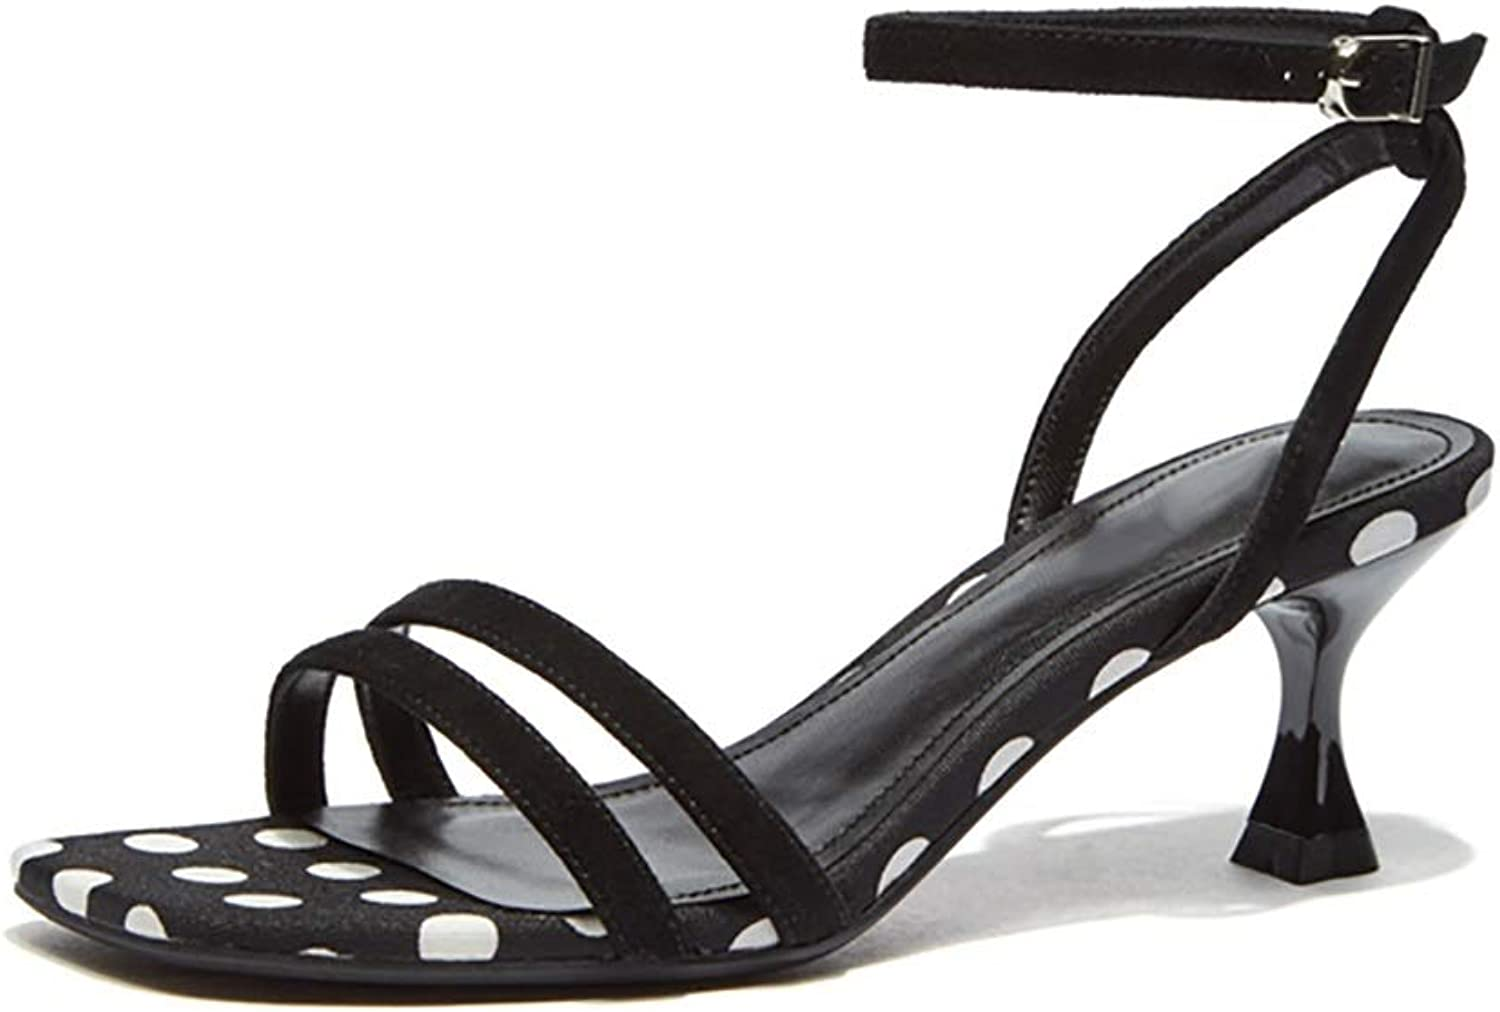 Women's Sandals Simple Wave Point High Heels, Black 7cm (color   Black, Size   6 US)